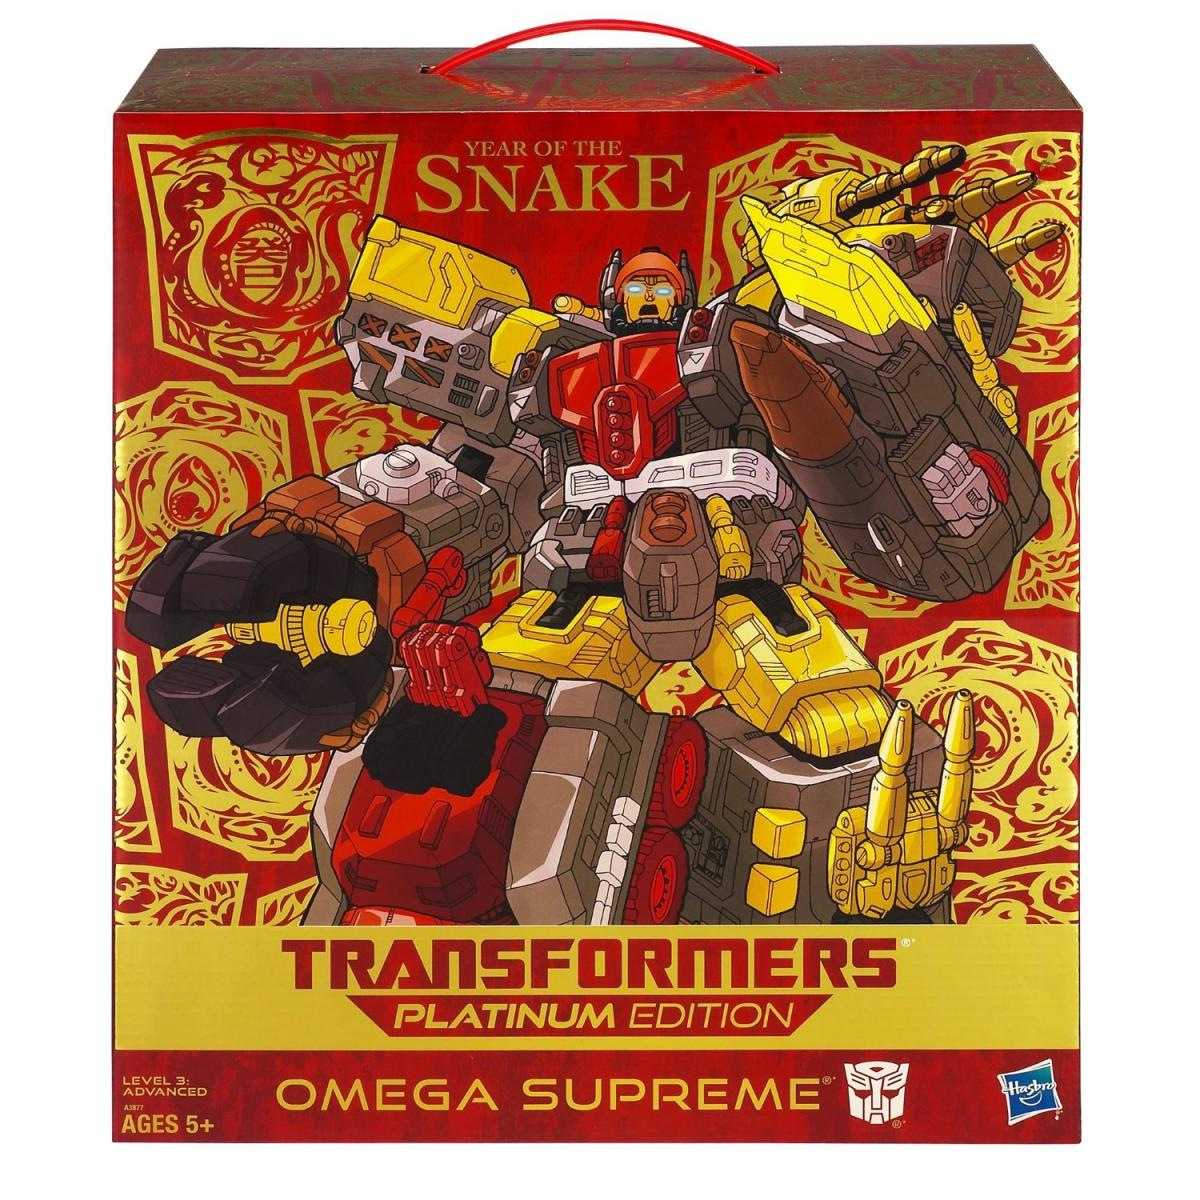 Edition Platinum: Year Of The Snake Omega Supreme